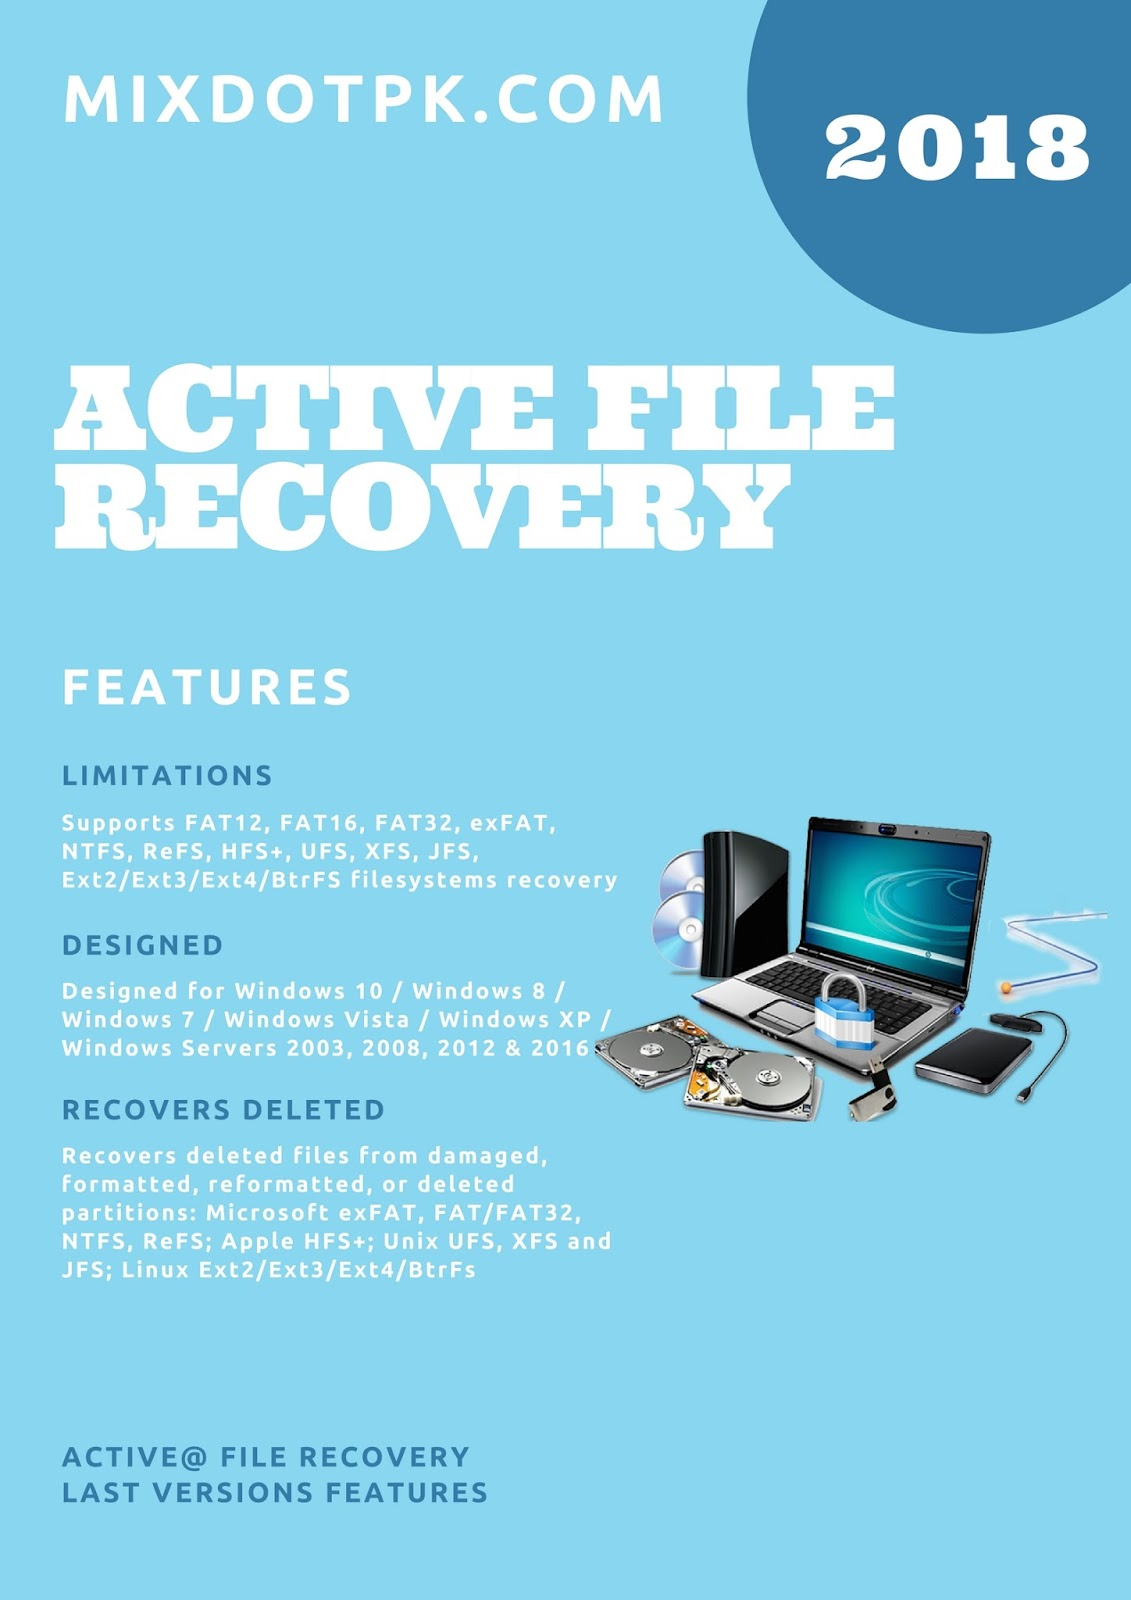 Active File Recovery Crack, active file recovery 16.0.8 key, active file recovery software full version free download, active file recovery 15.0.7 registration key, active file recovery 16 serial key, active file recovery 16 key, active file recovery full, active file recovery 16.0.8 registration key, active file recovery download